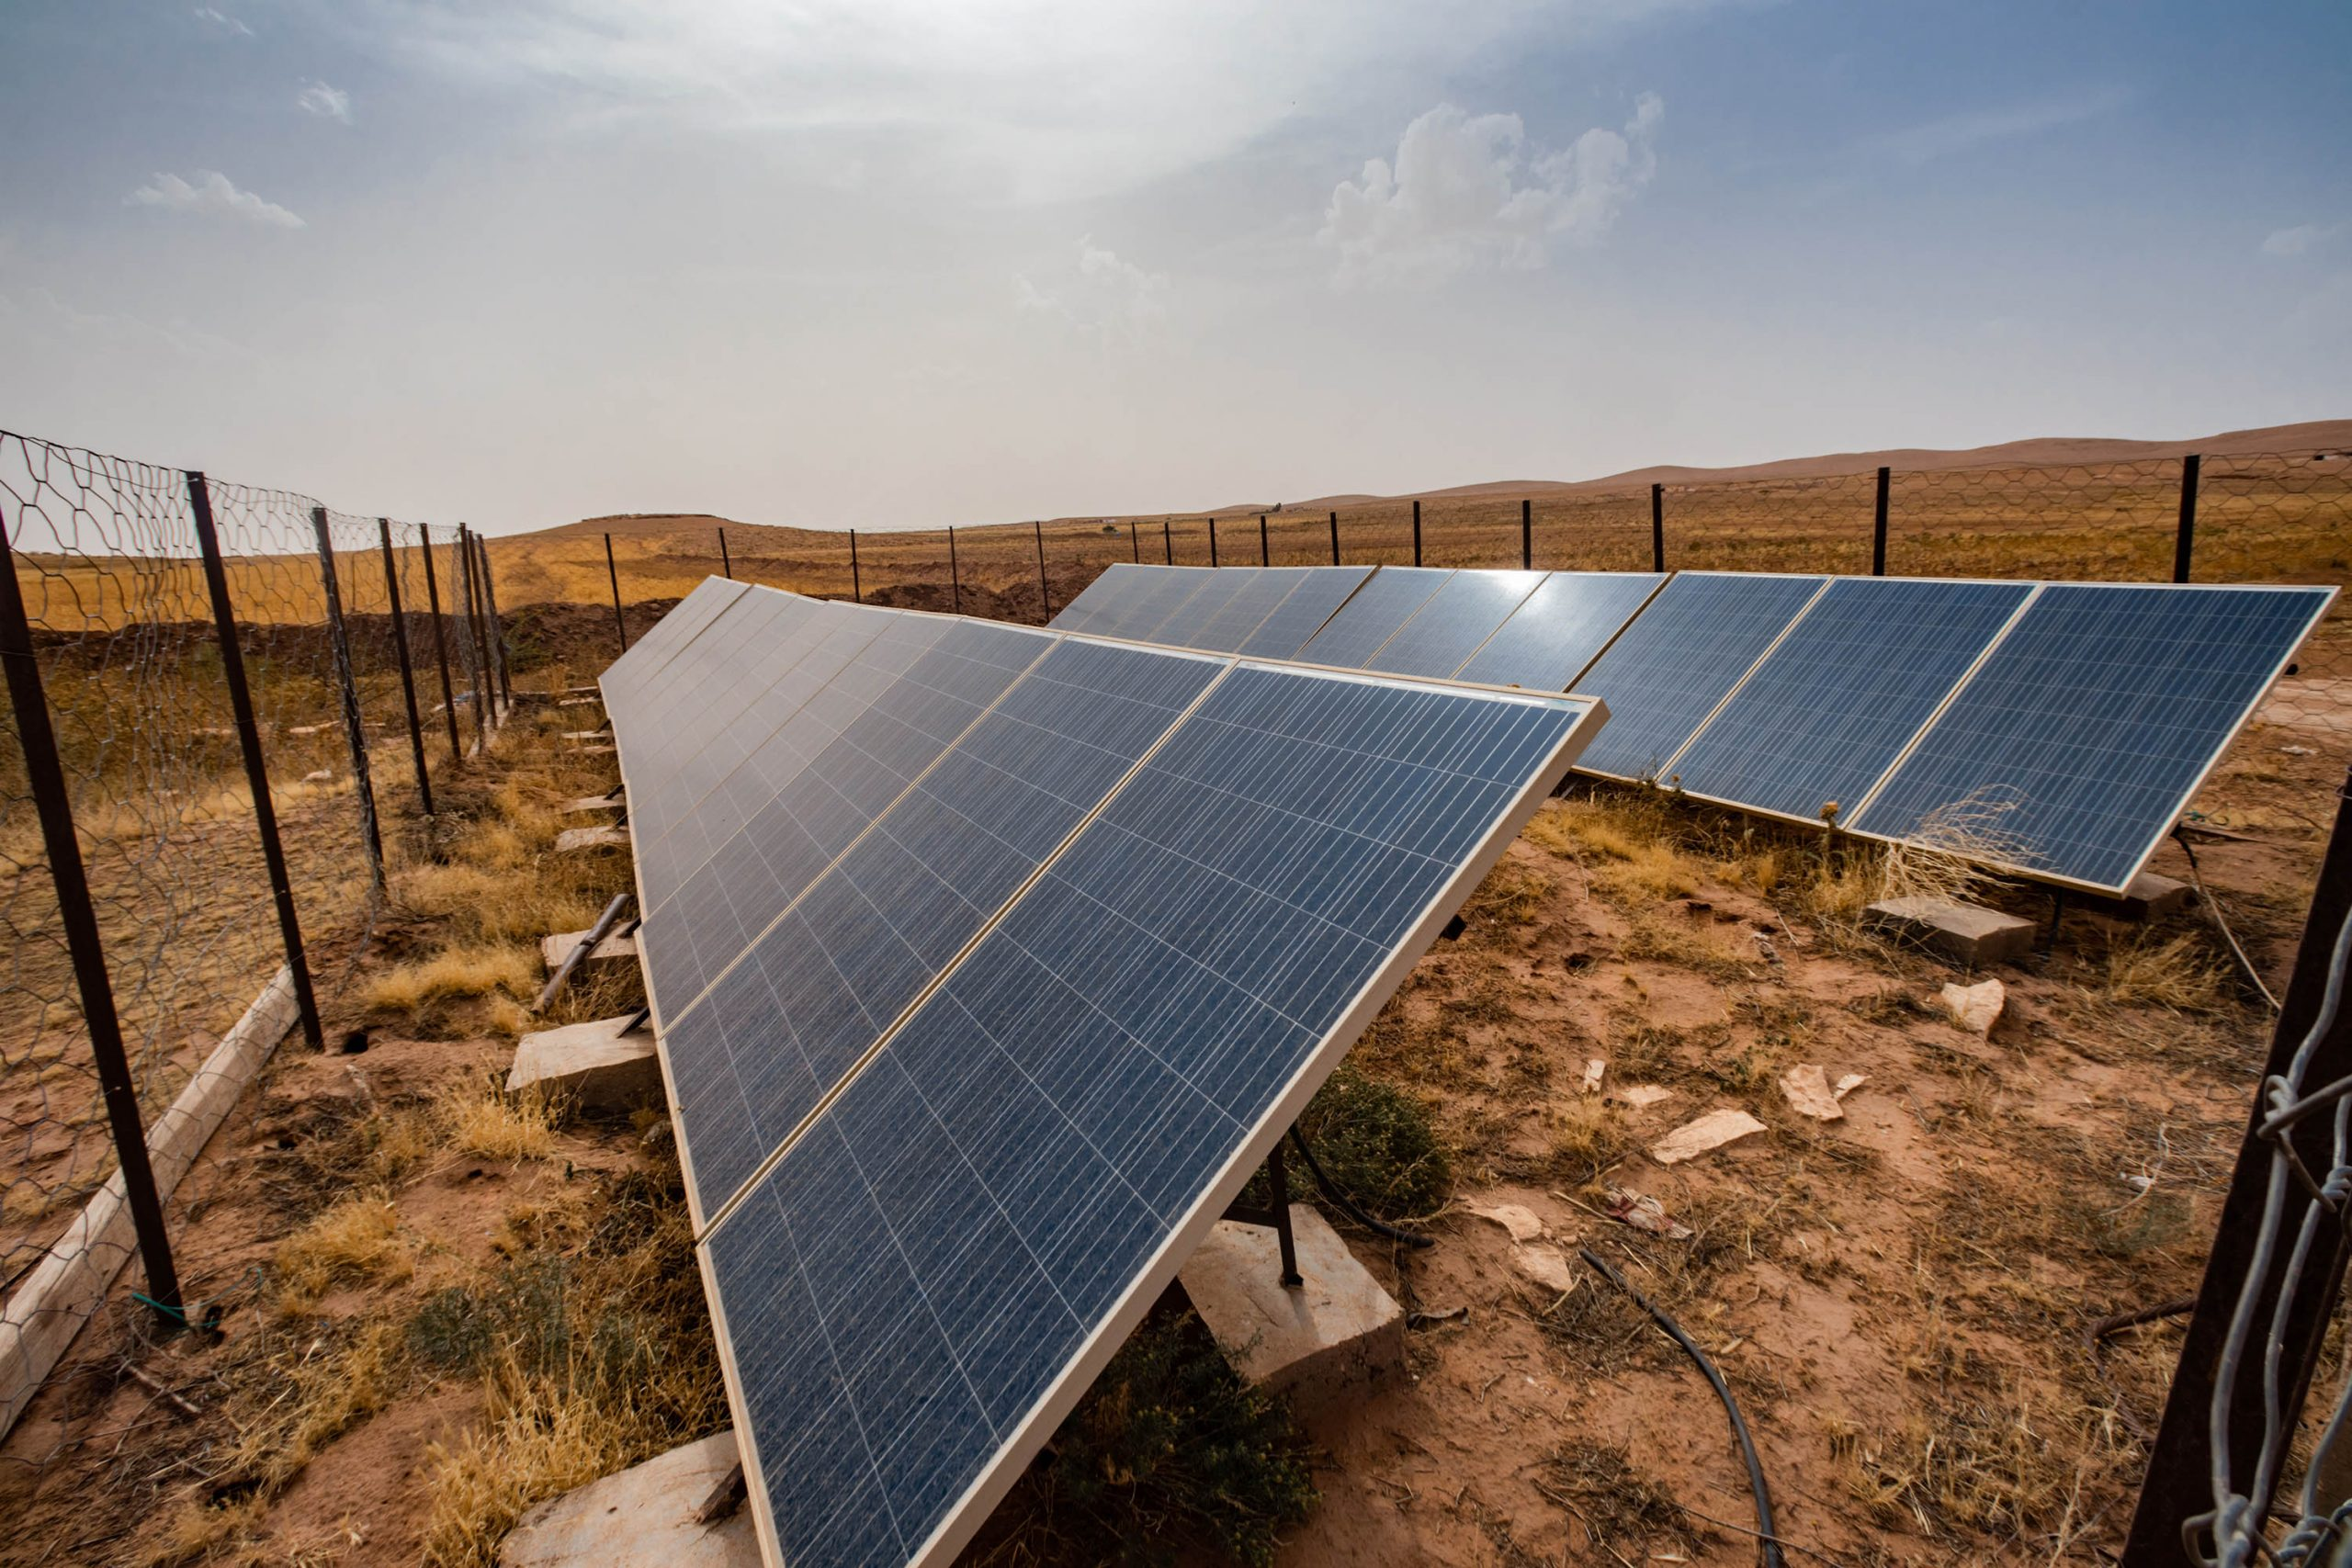 27 June 2020: An investor financed the installation of solar panels to power the well Mohamed Dahmoune uses to irrigate his lucerne fields. (Photograph by Abderazak HadjTahar)